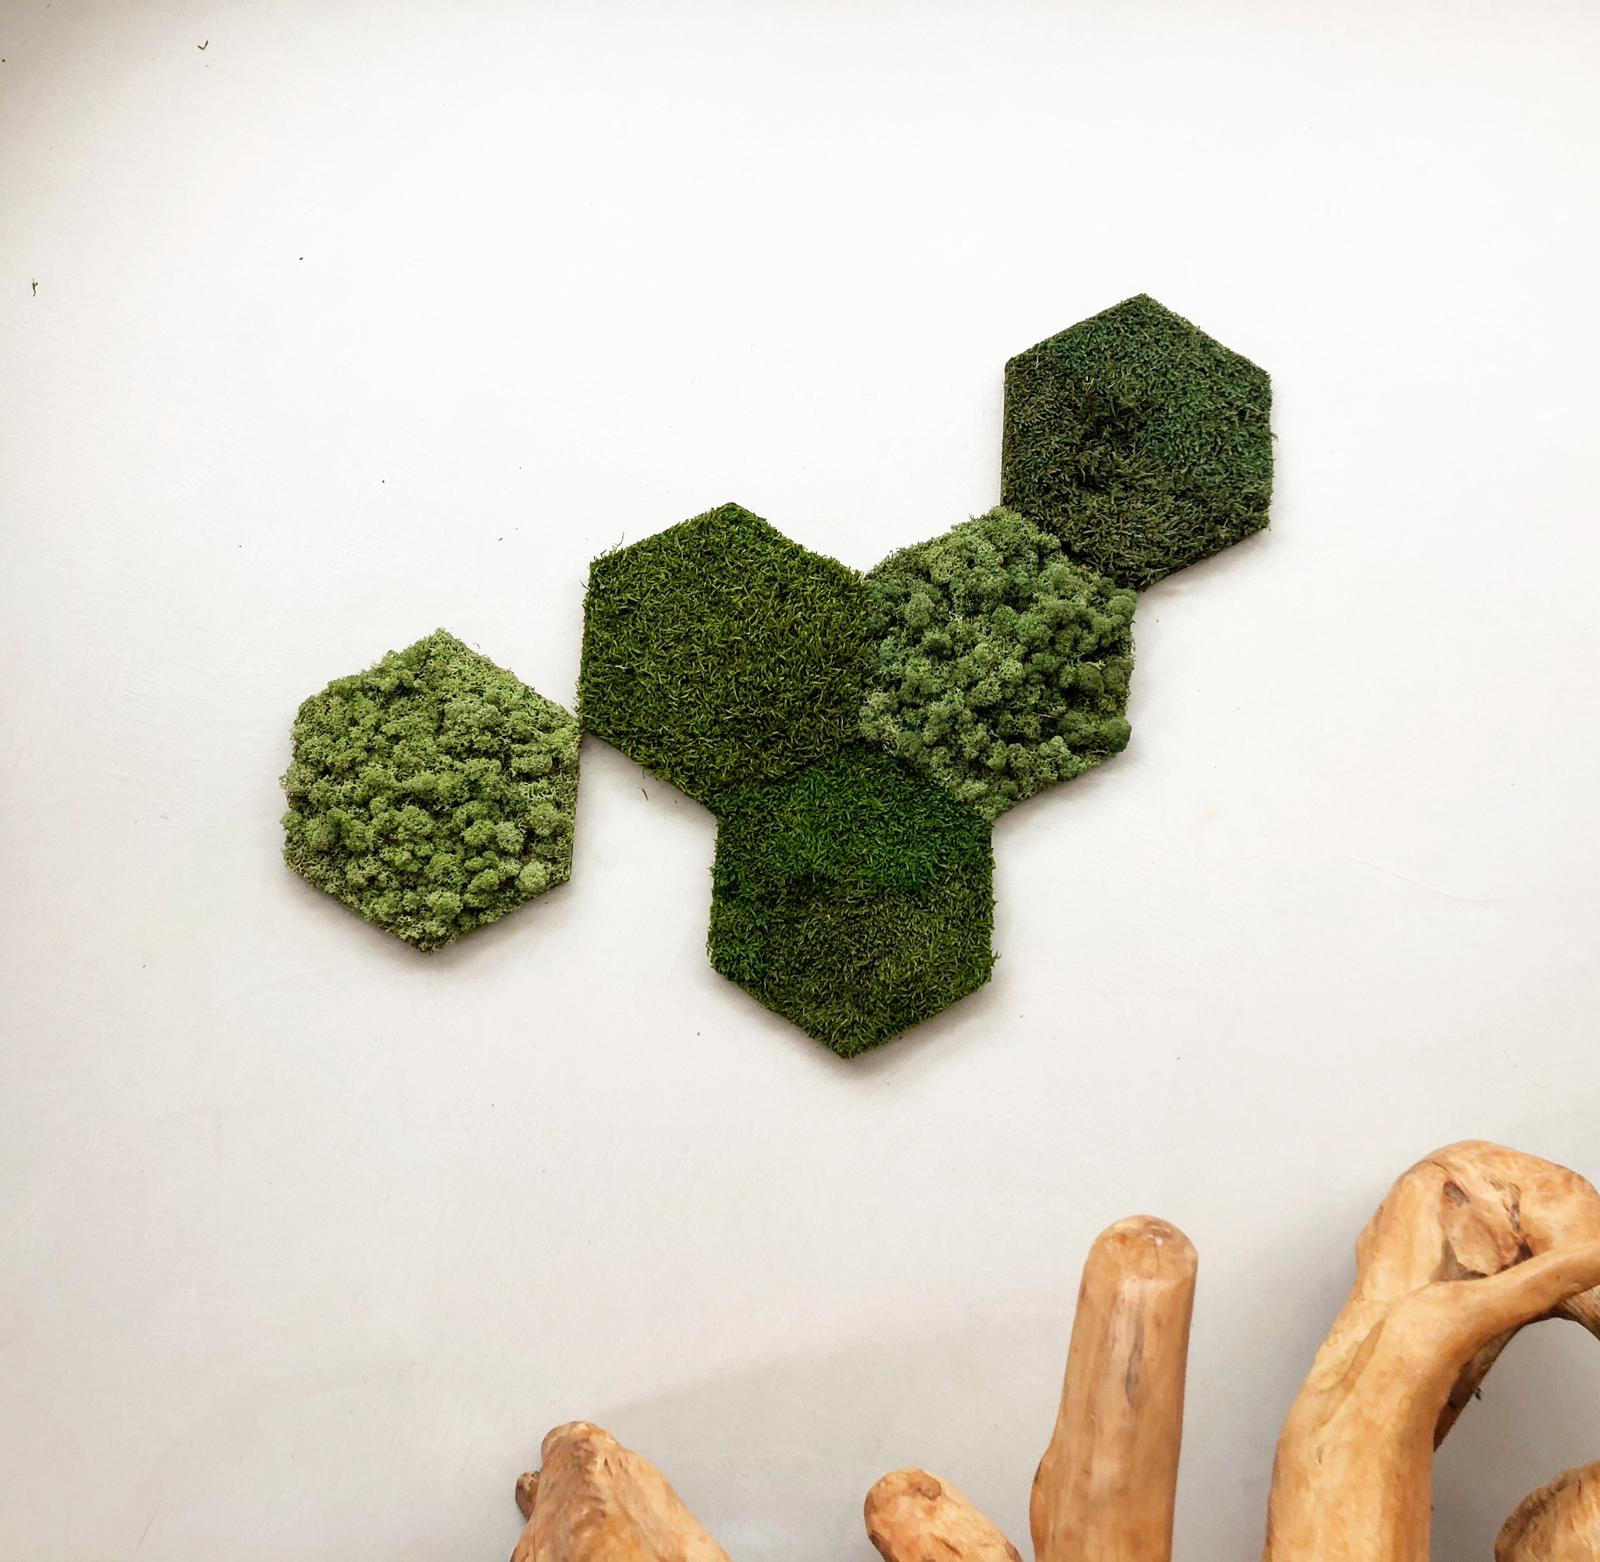 Mos hexagons